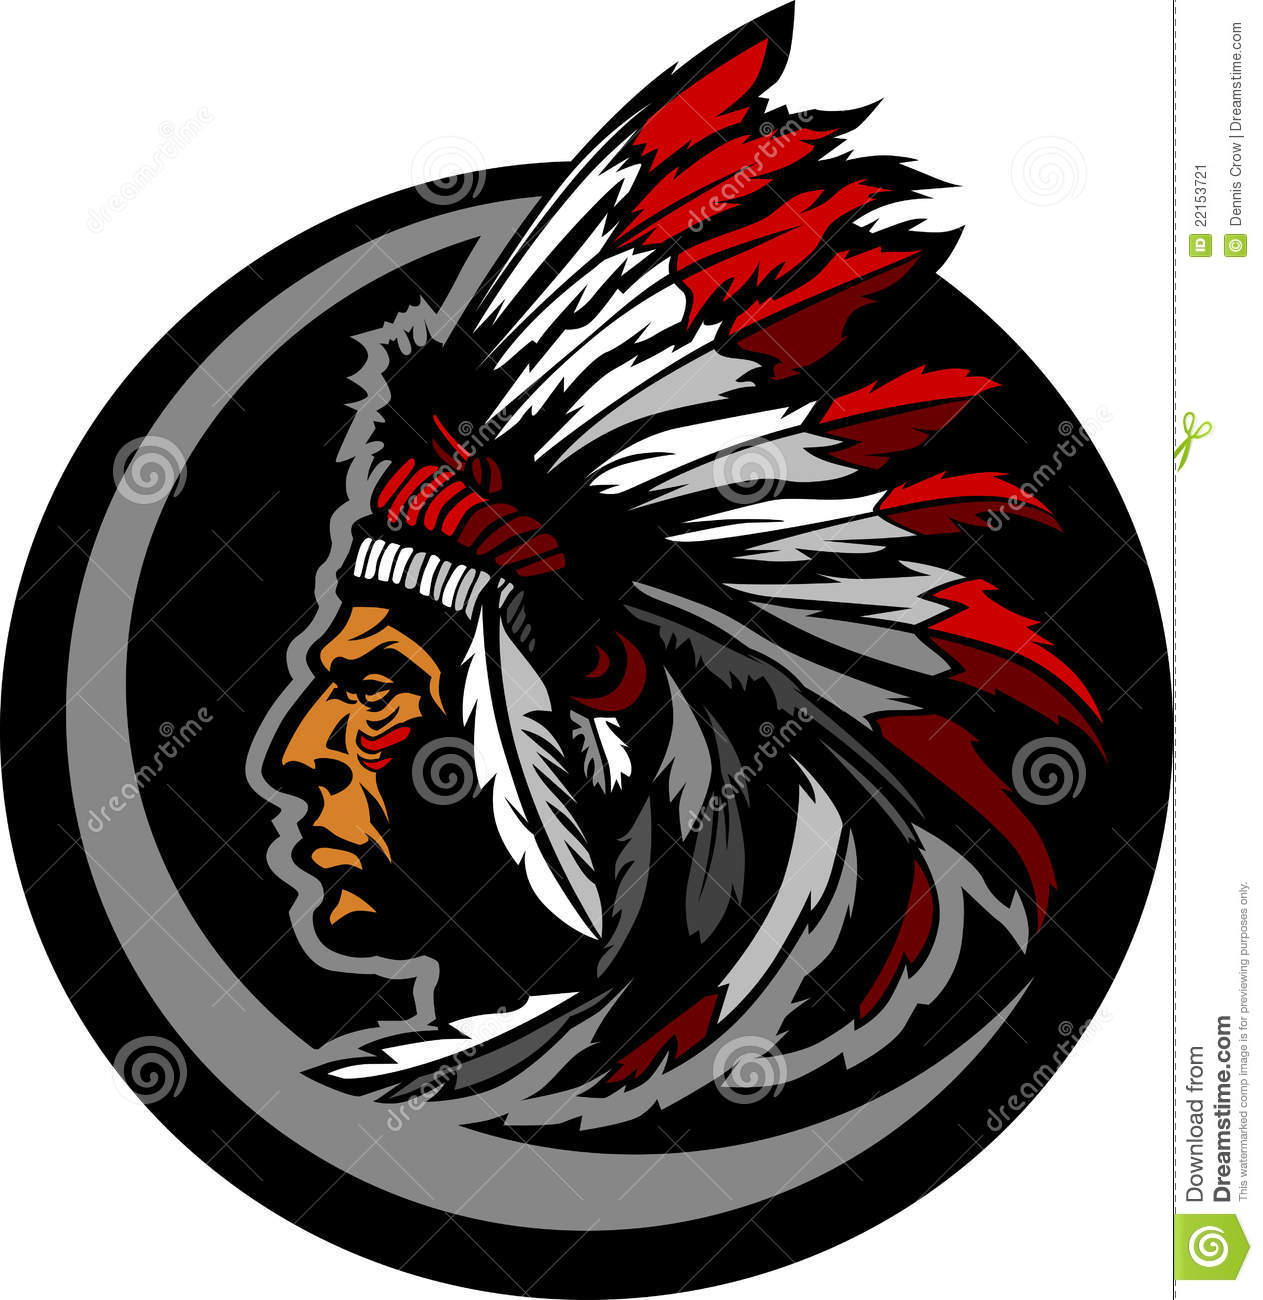 american native indian chief mascot head graphic stock Old Chief Indian Funny Indian Chief